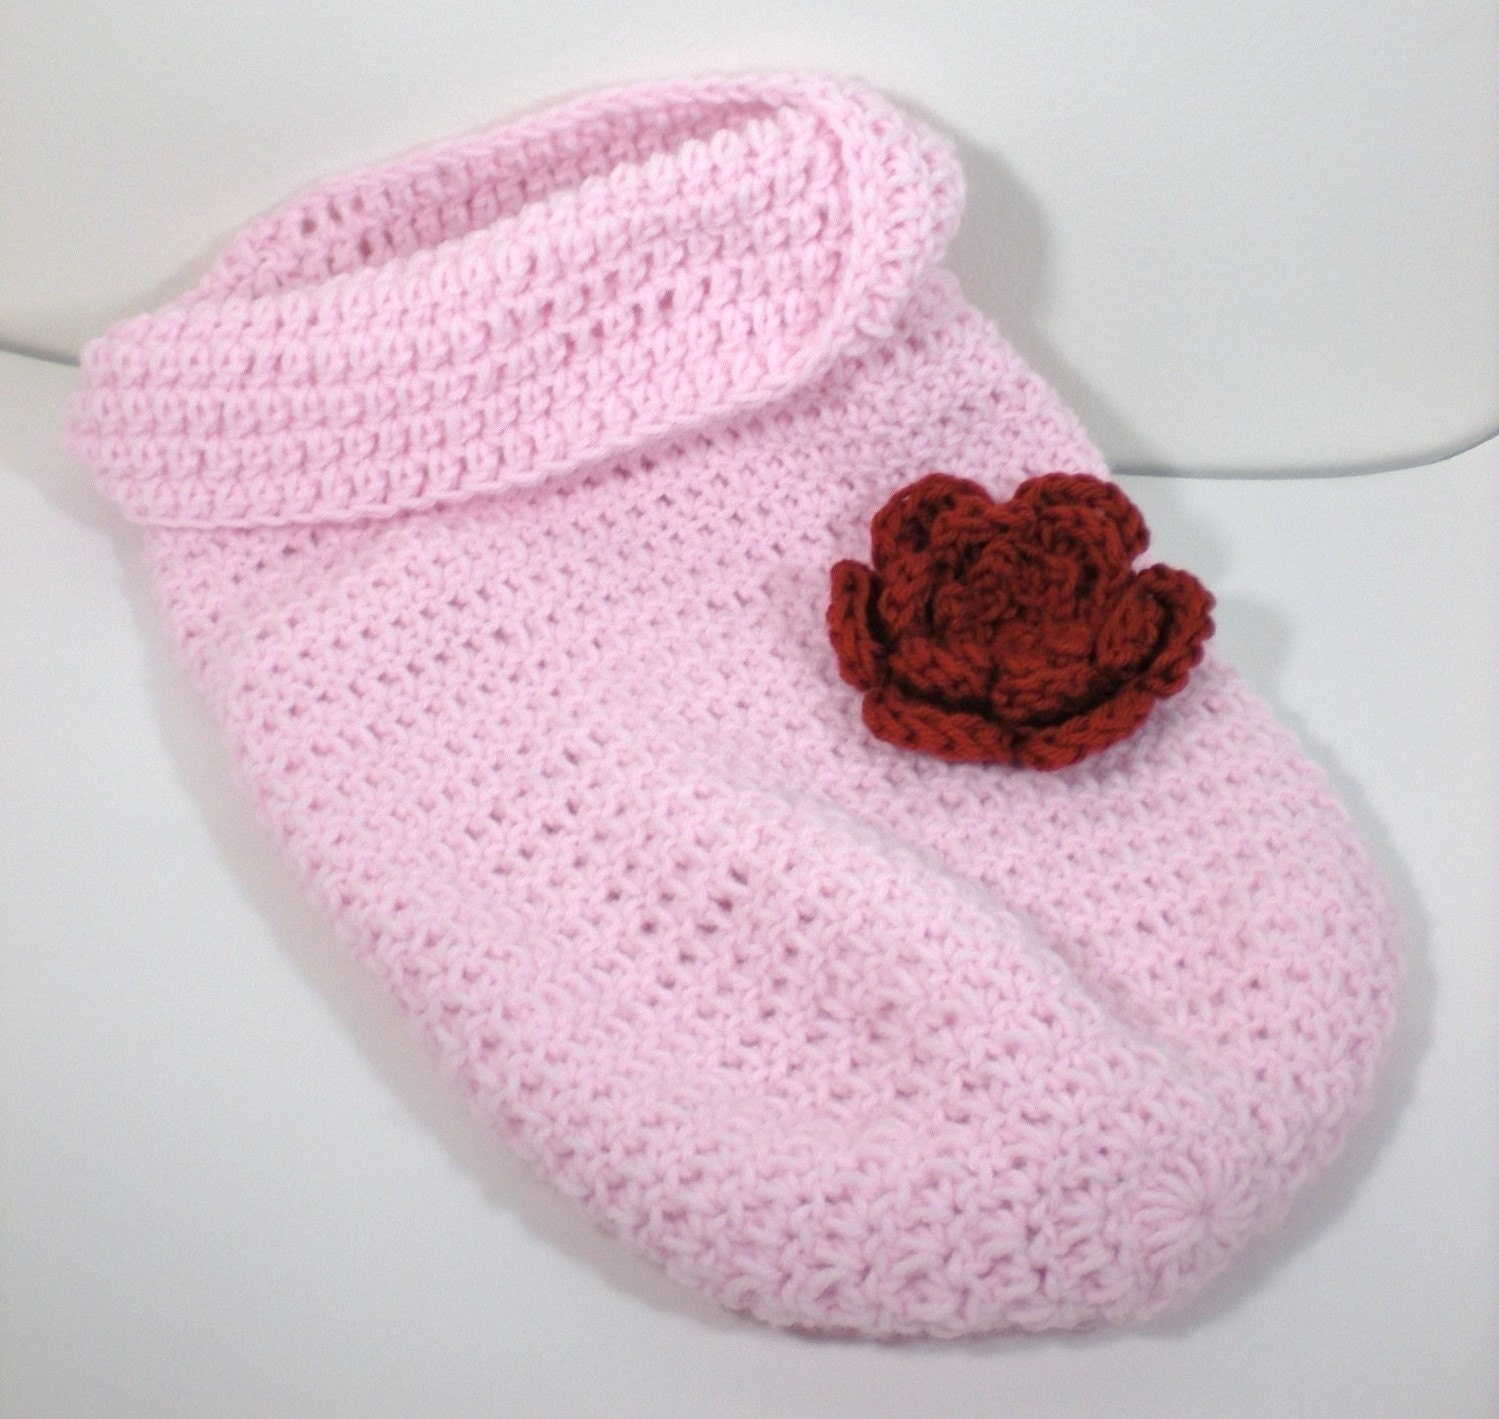 CROCHET BABY COCOON PATTERN ? Crochet For Beginners